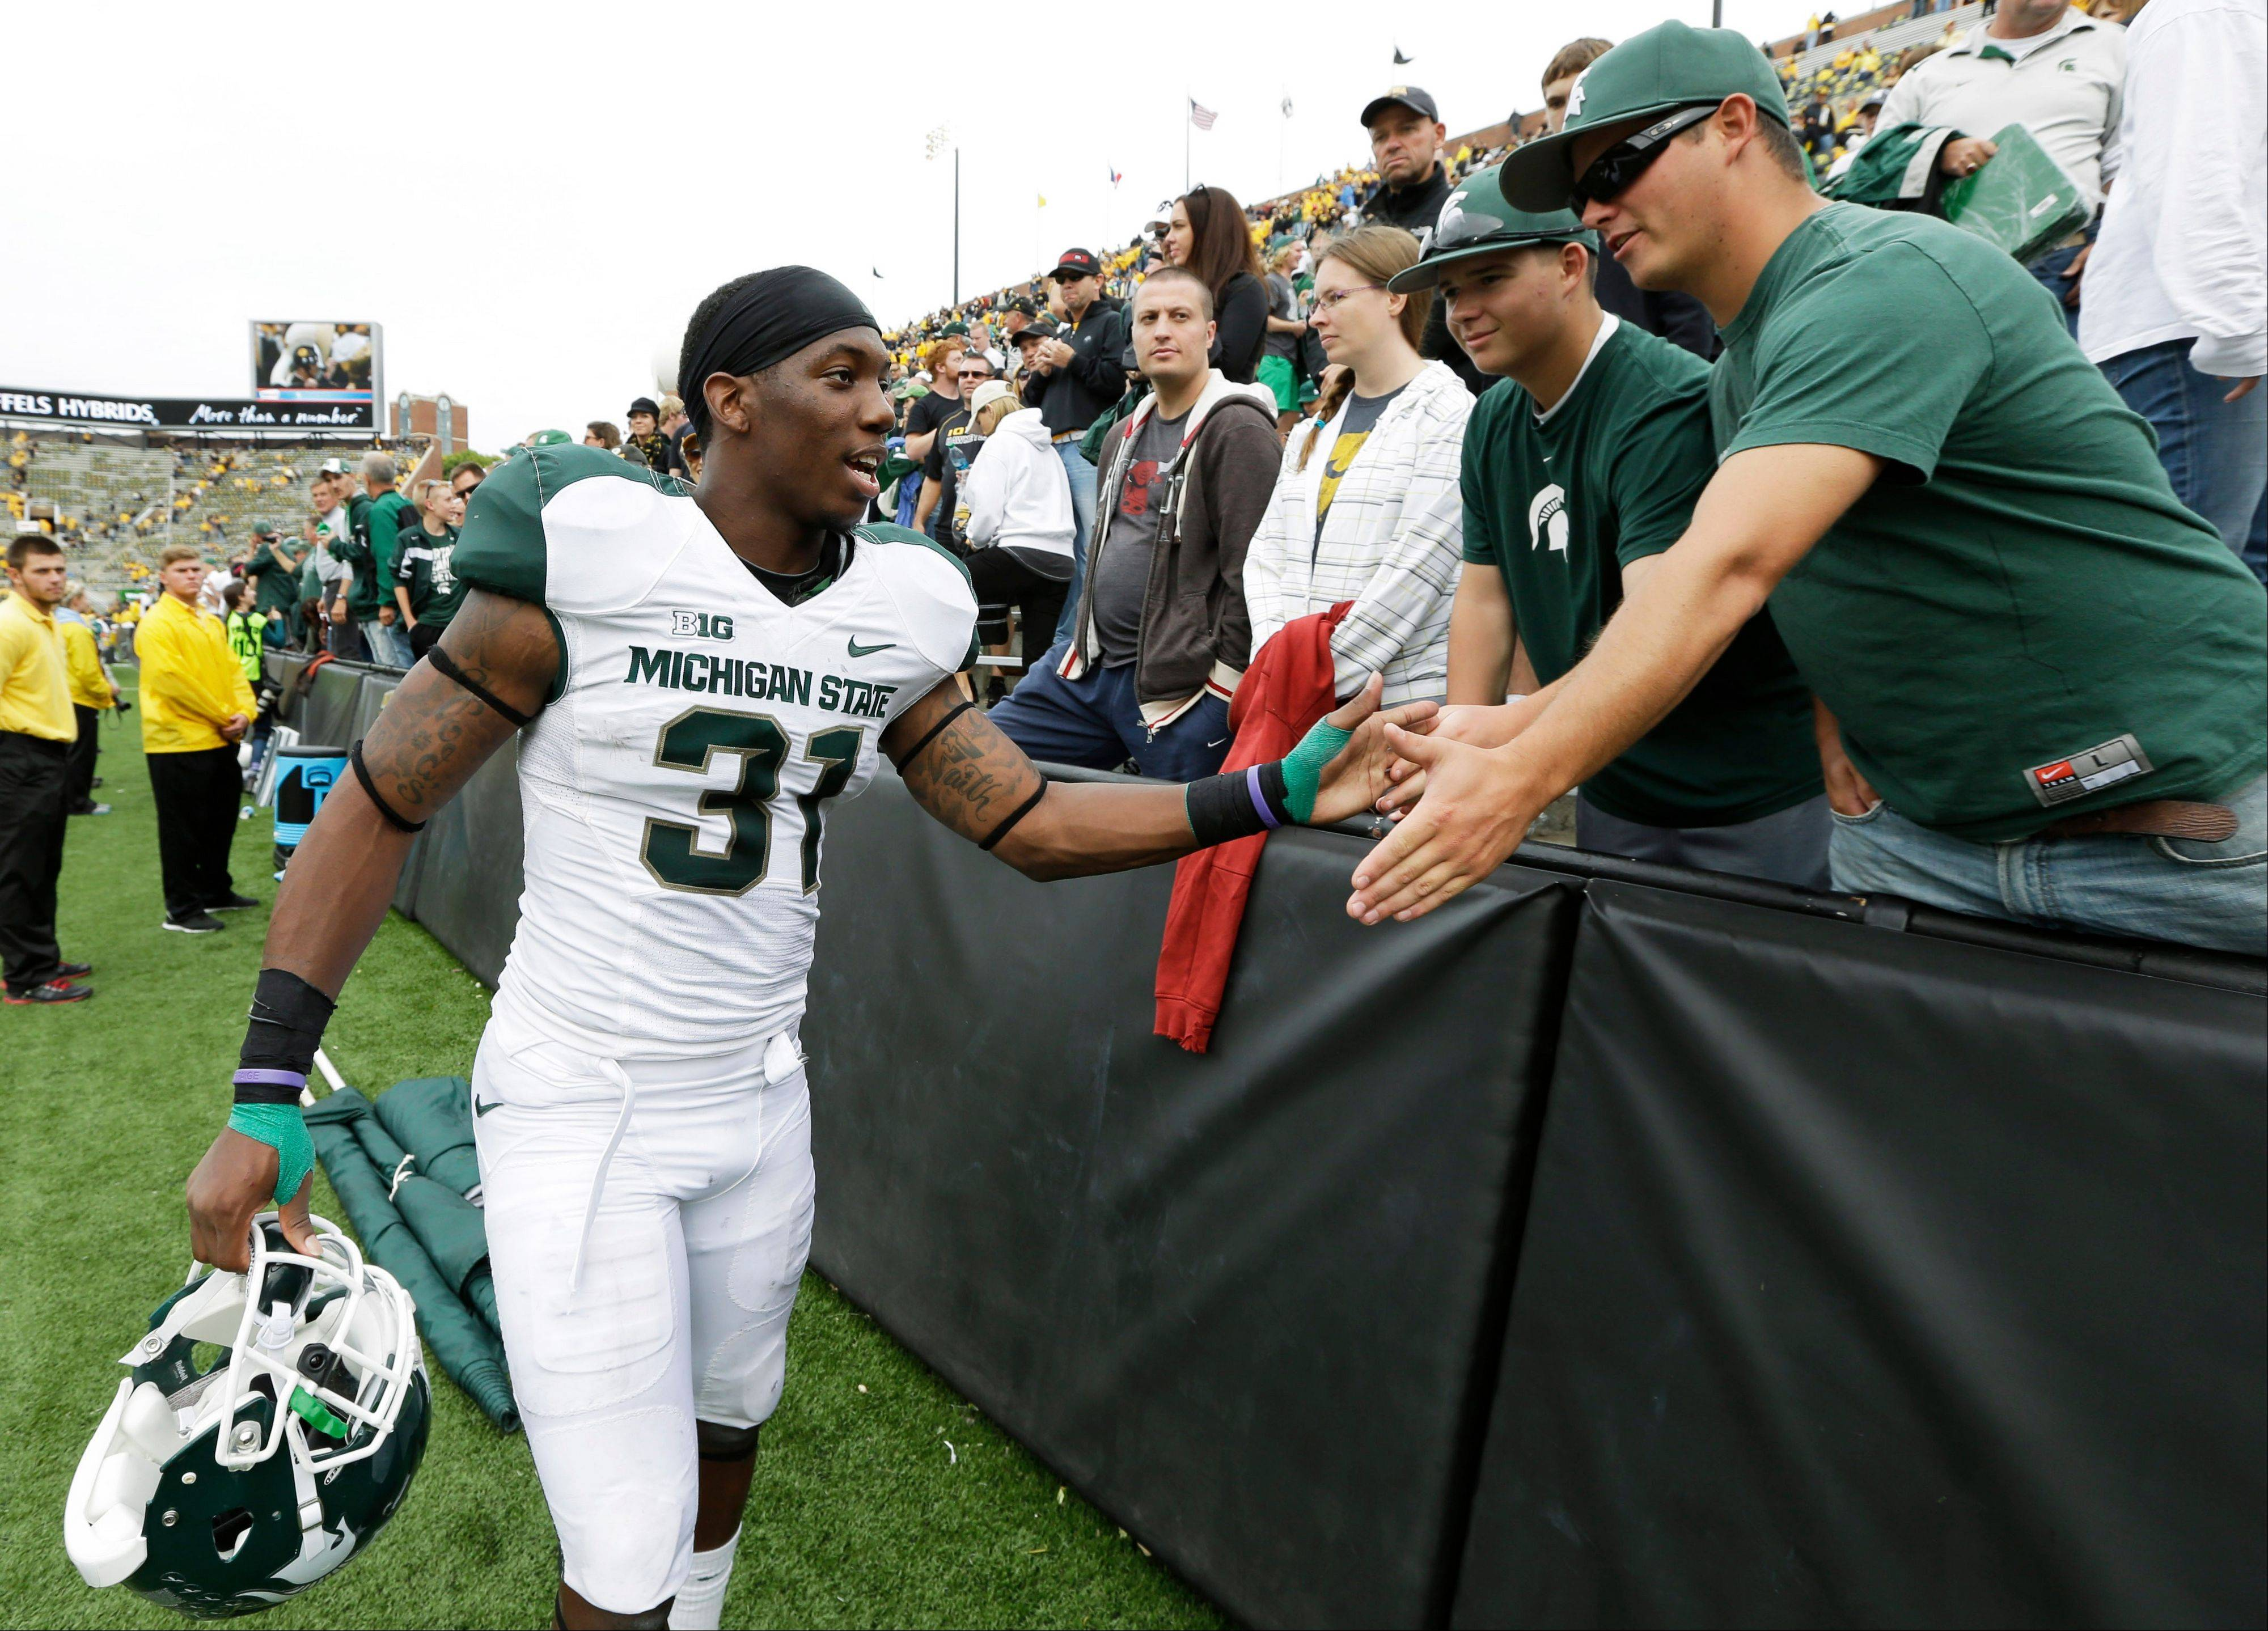 Michigan State cornerback Darqueze Dennard celebrates with fans after Saturday�s road win against Iowa.